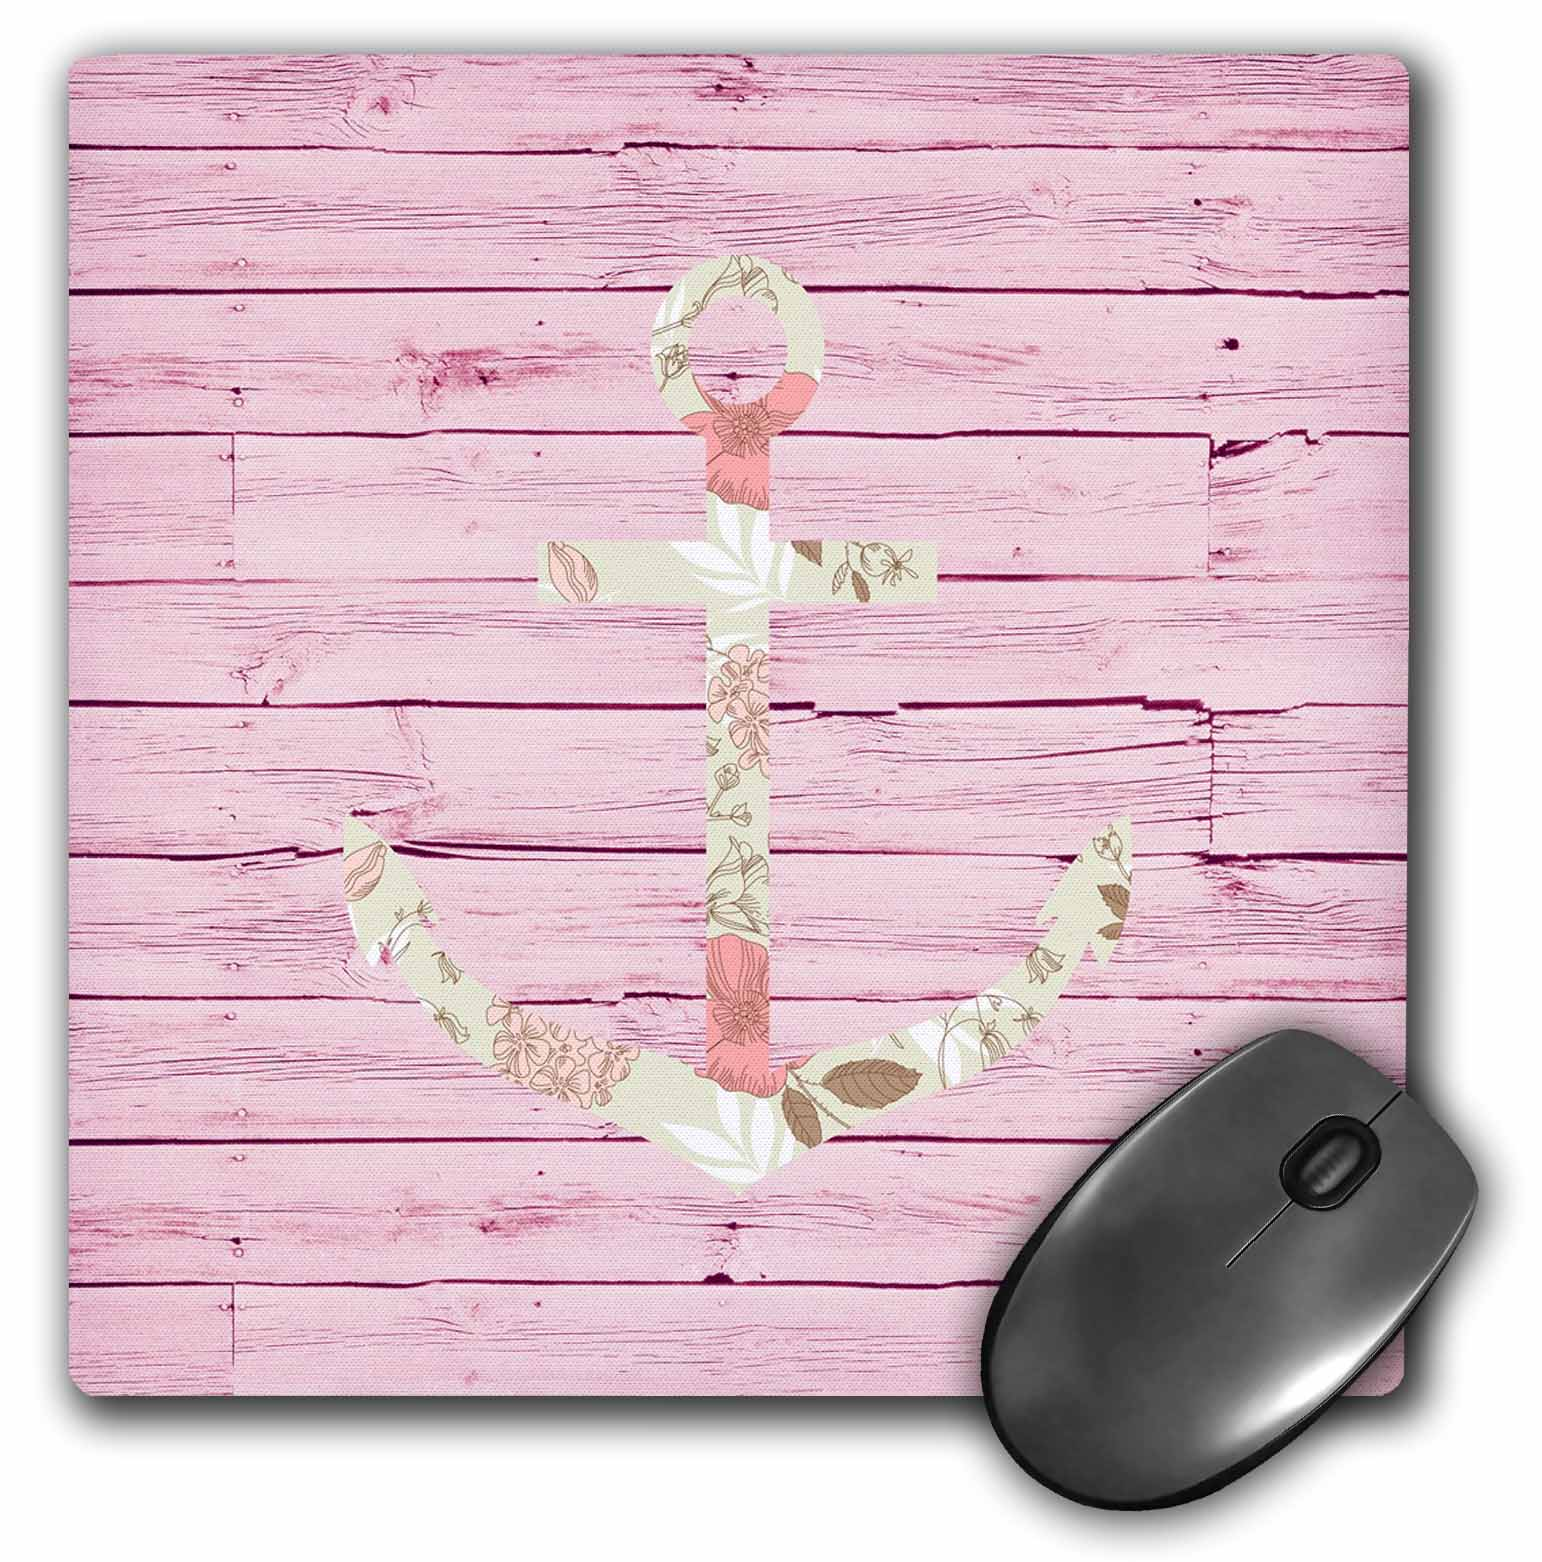 3dRose Pink Wood Floral Anchor, Mouse Pad, 8 by 8 inches